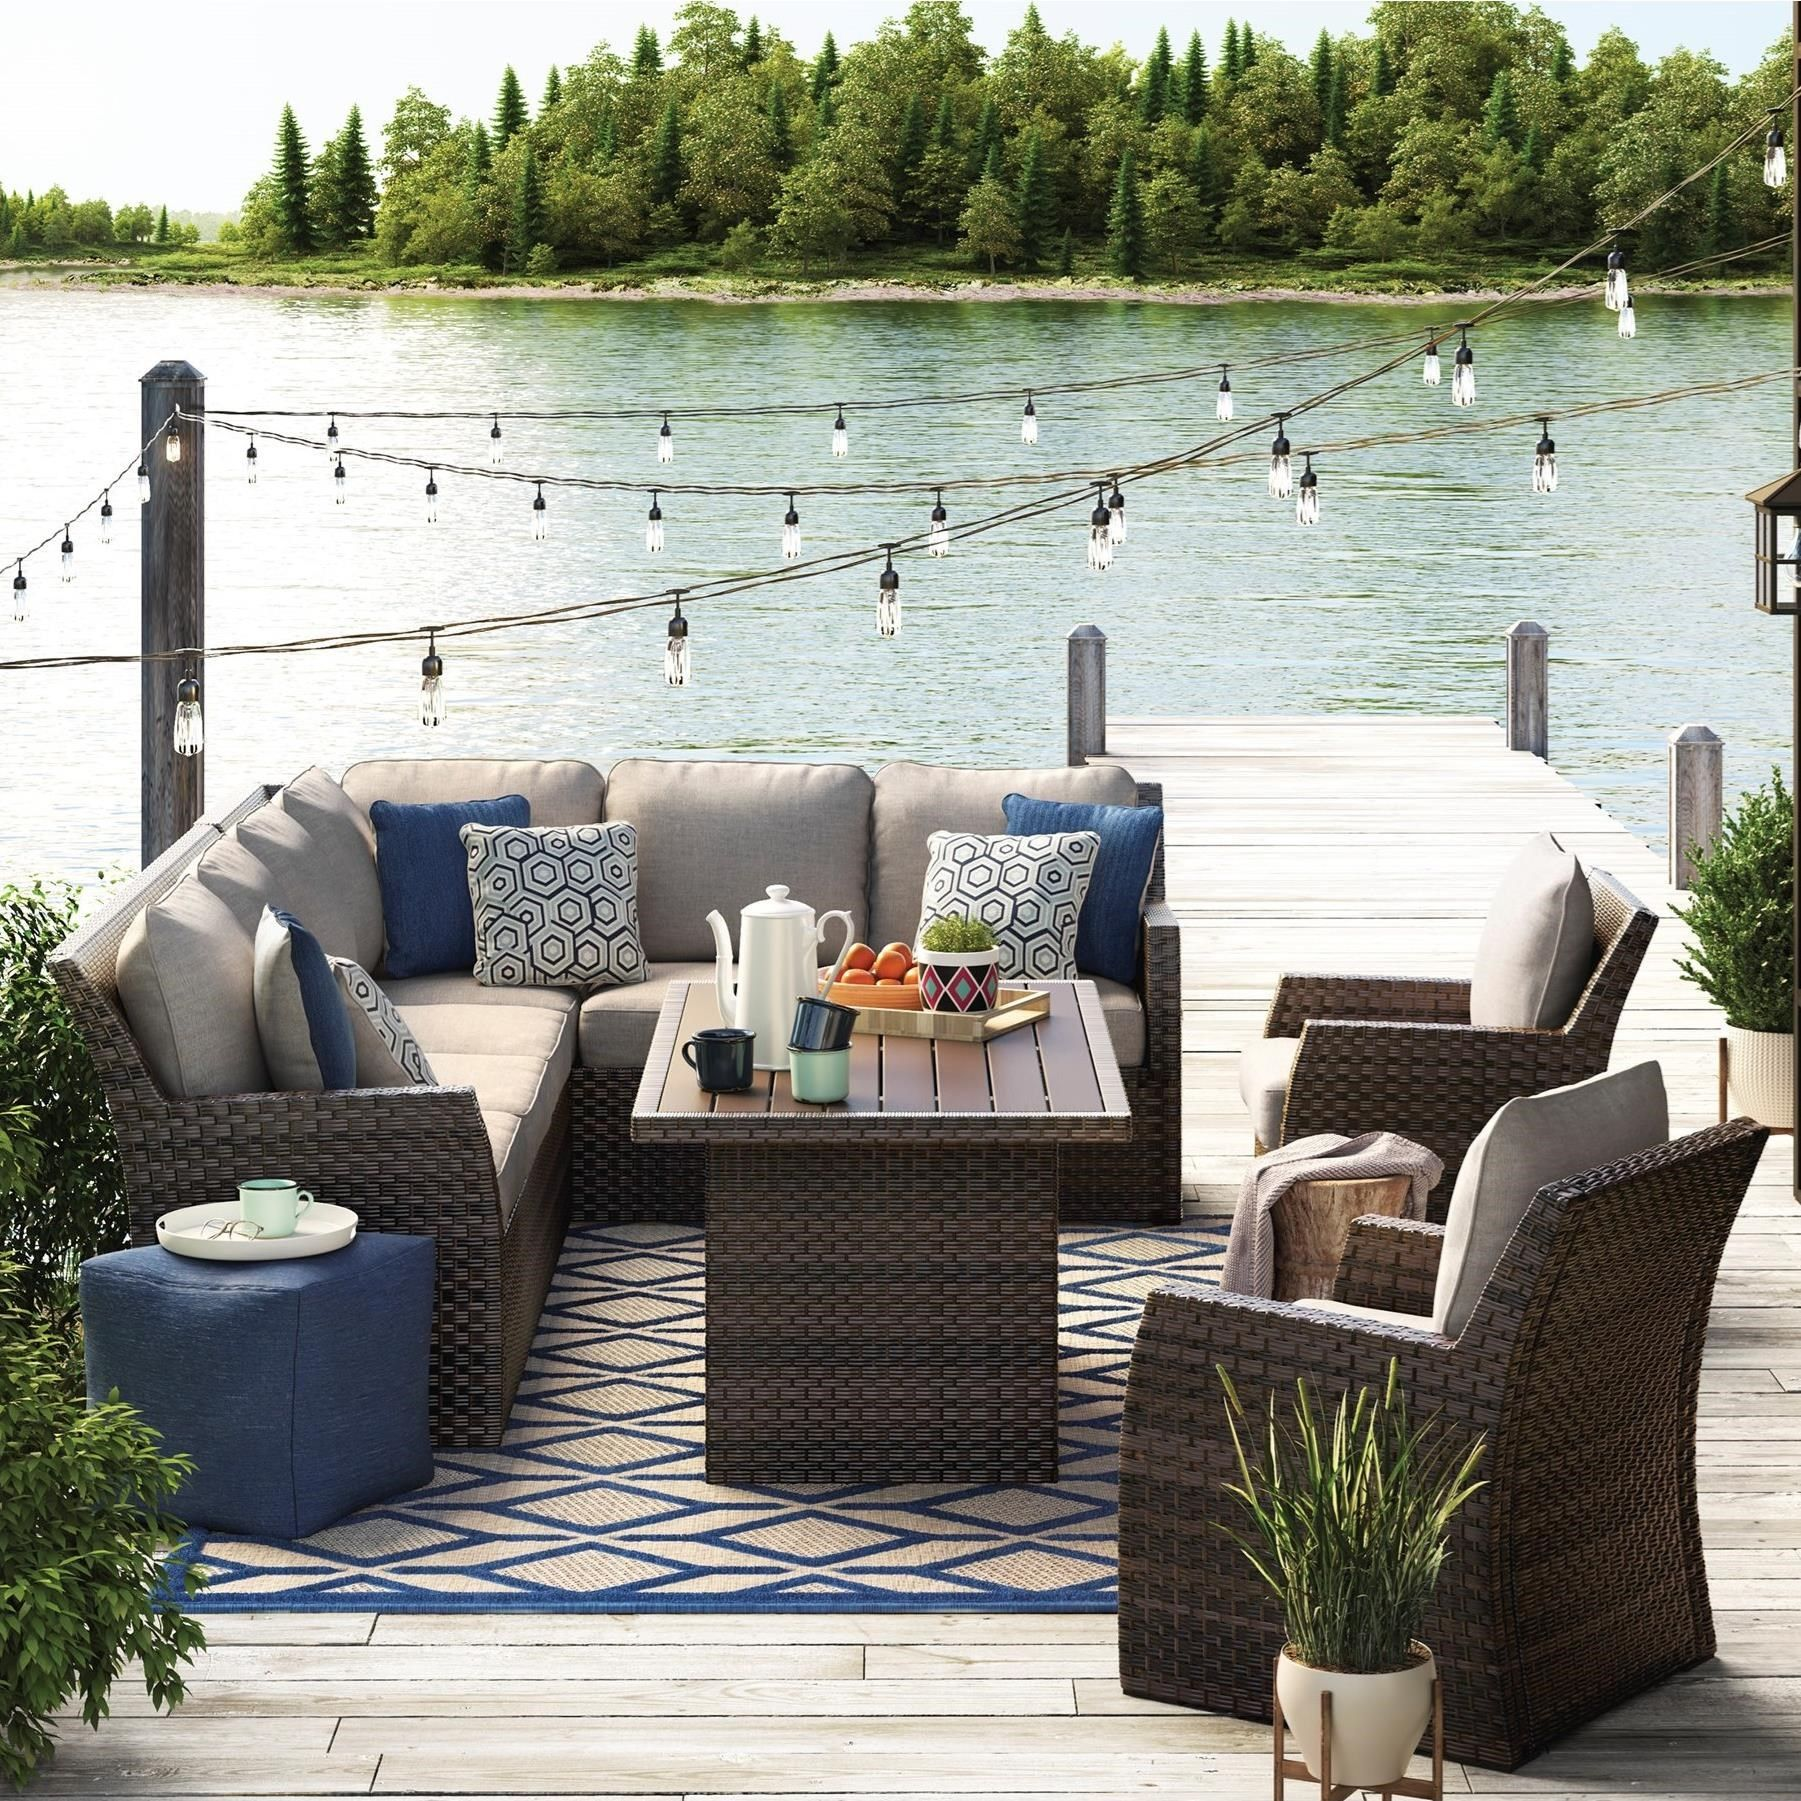 Salceda Outdoor Sectional With Table The Multi Use Table Is